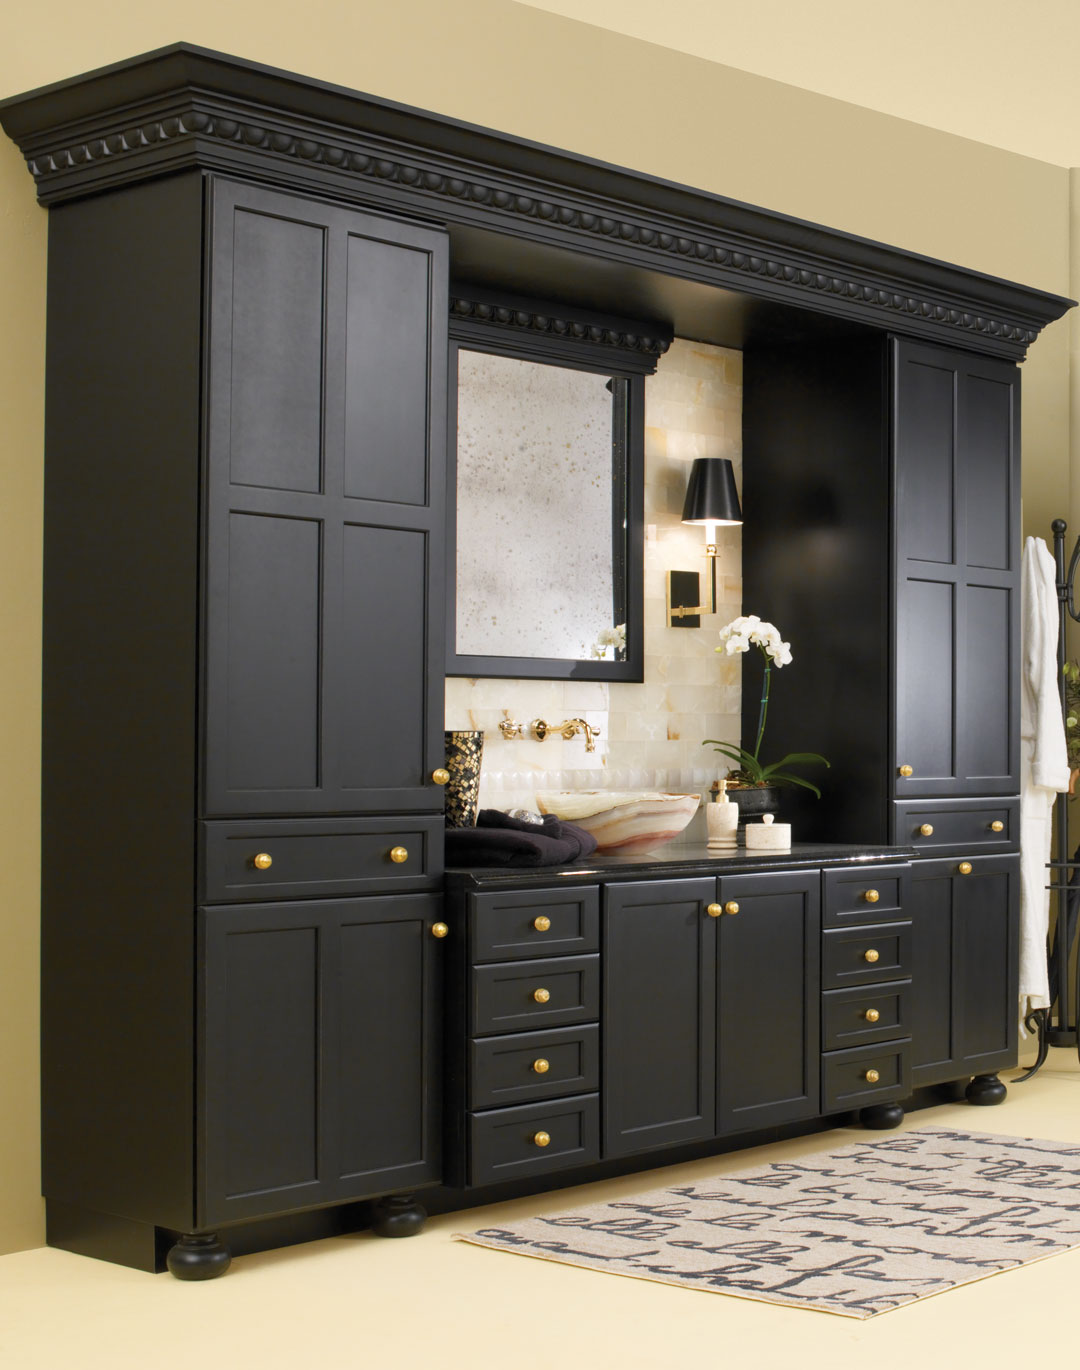 Contemporary Bathroom Cabinets Plain & Fancy Cabinetry